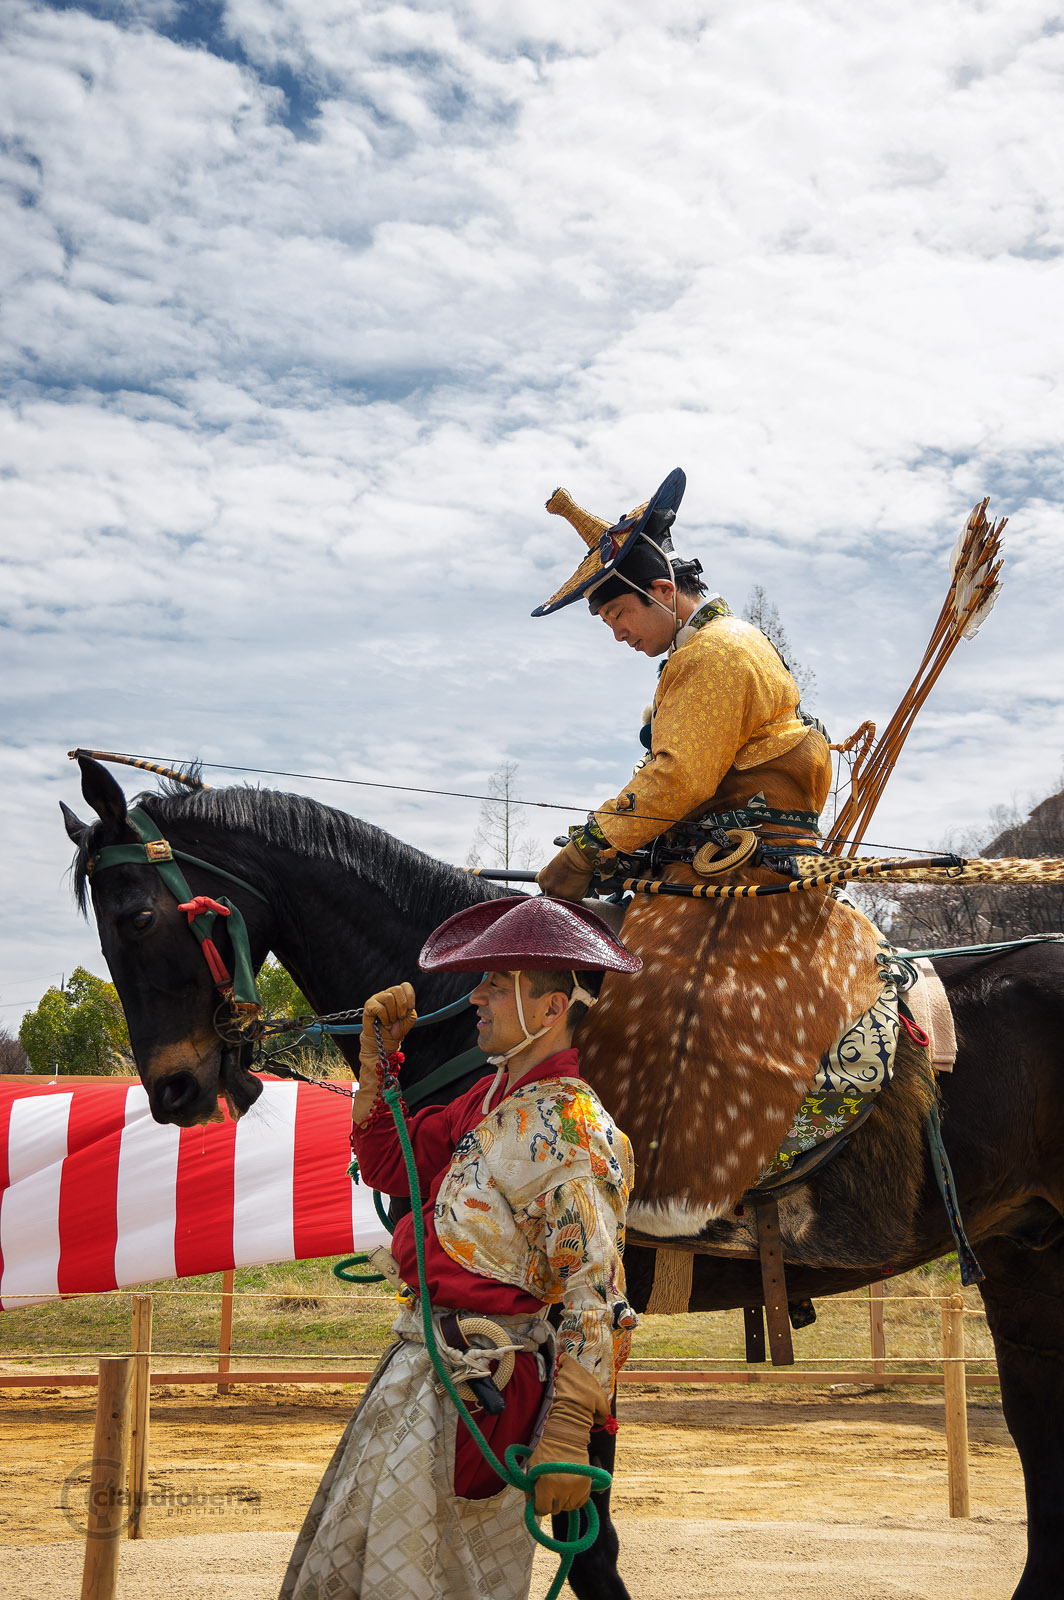 Japan, Yabusame, Traditional mounted archery, Relaxation time for archer and horse